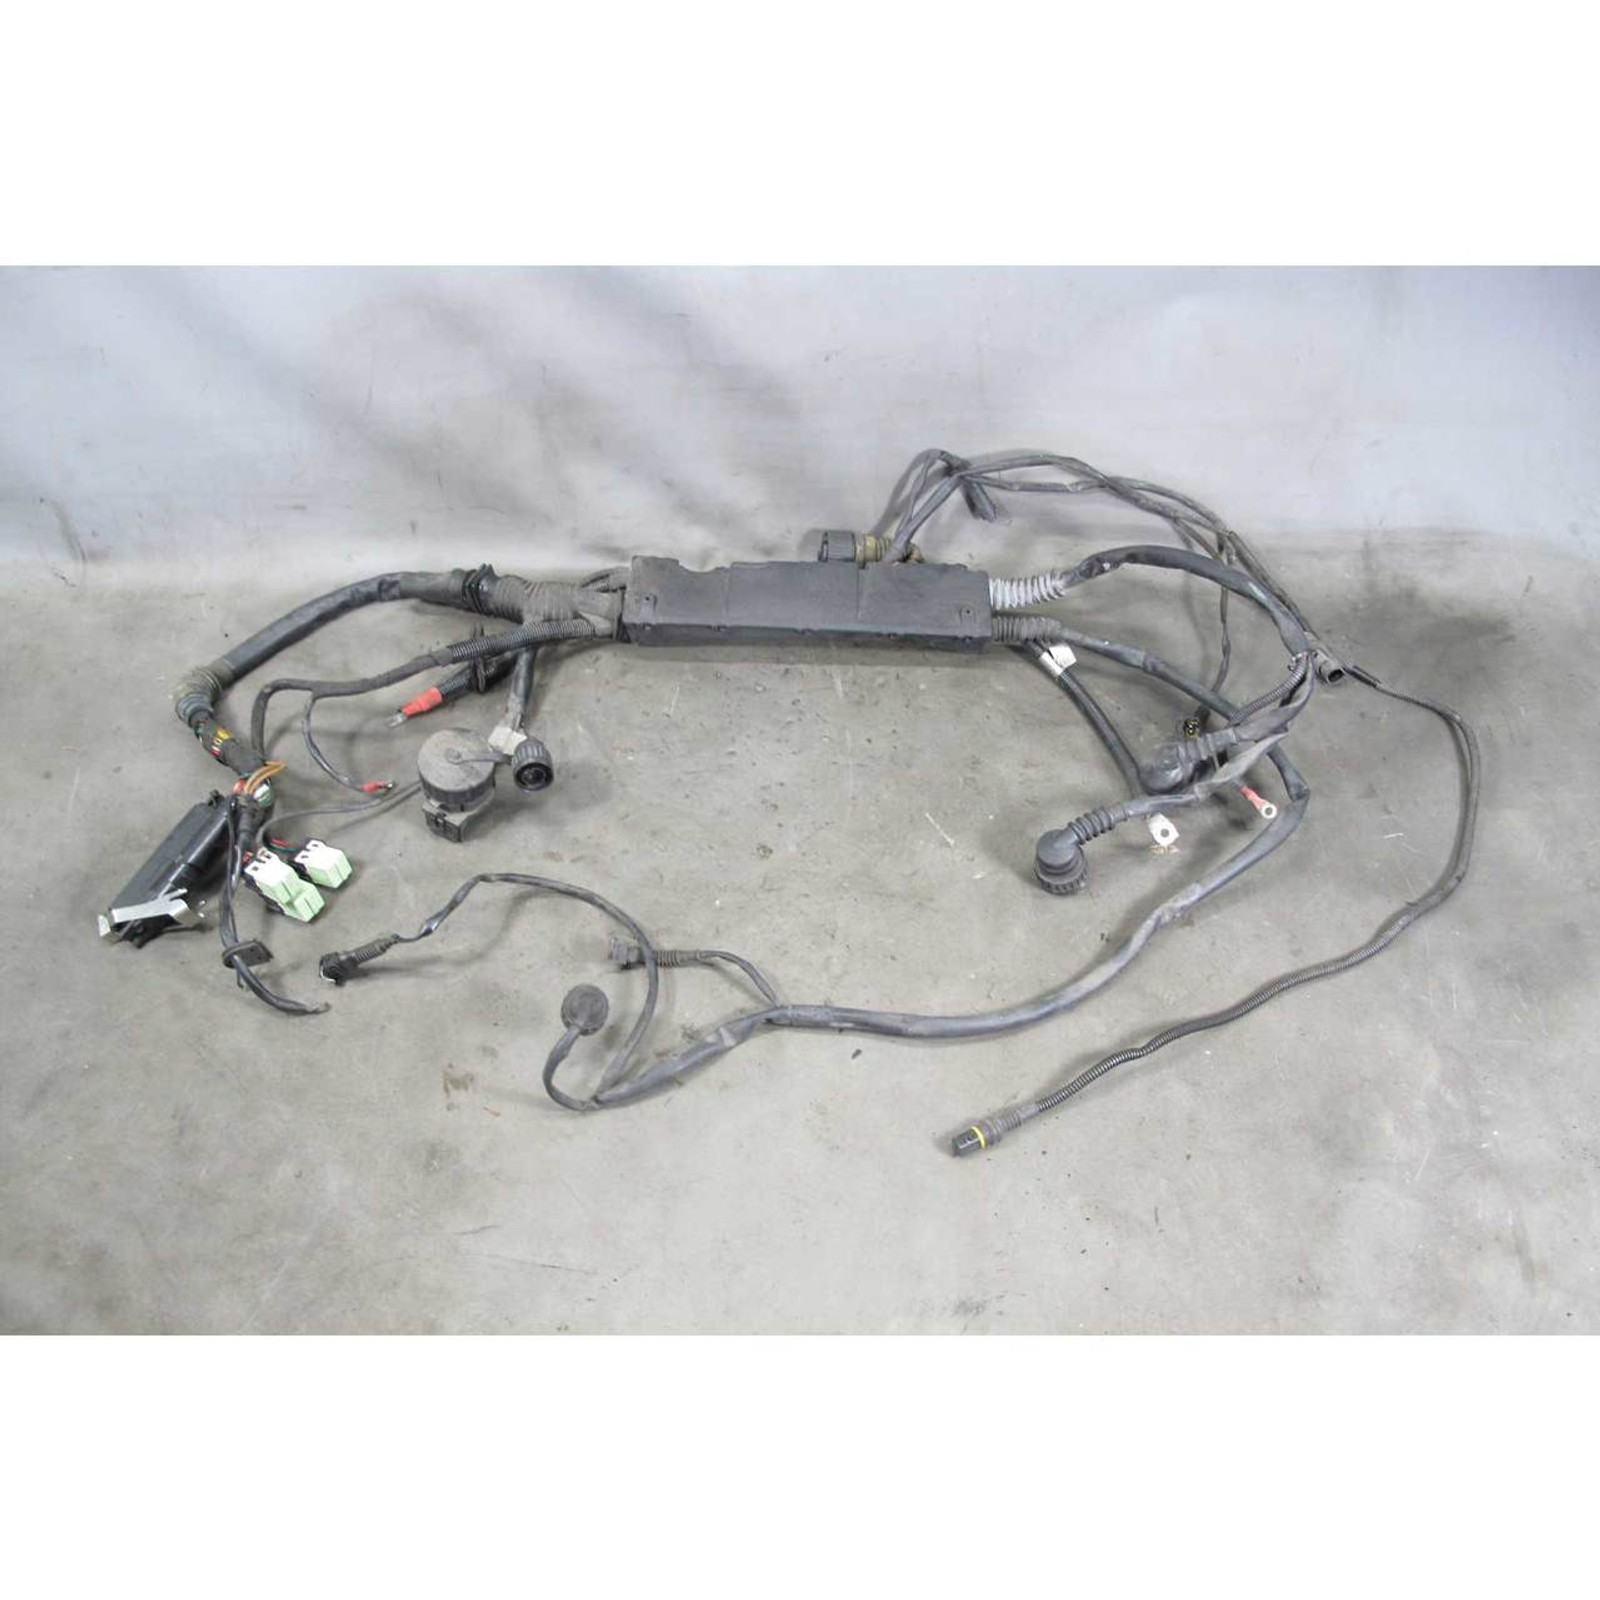 1996 BMW Z3 1 9 Roadster M44 4 Cyl Engine Wiring Harness